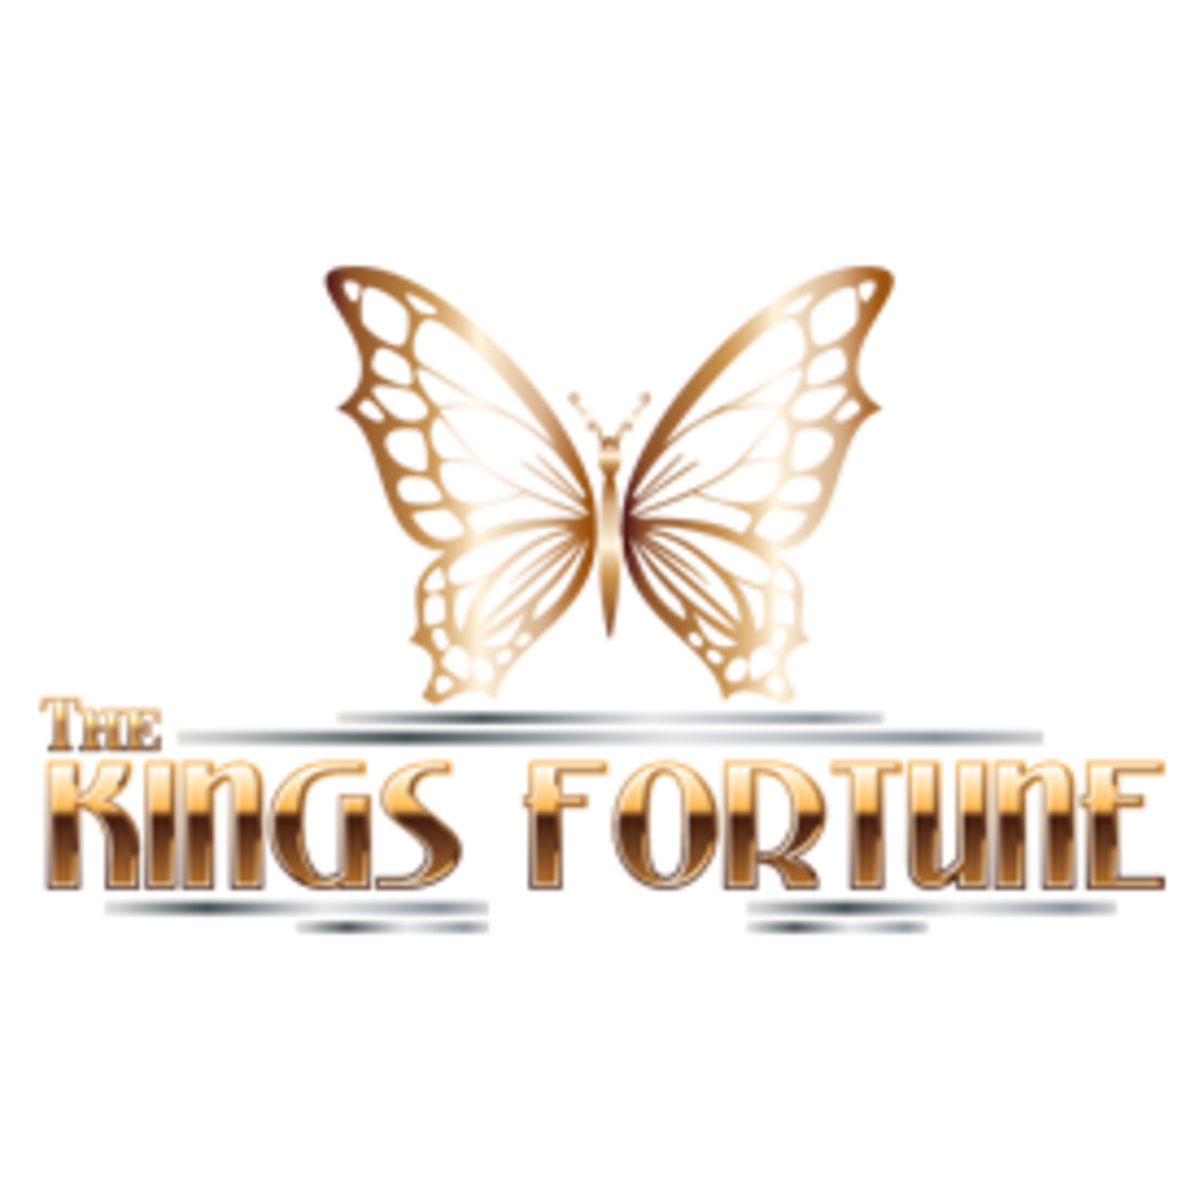 King's Fortune